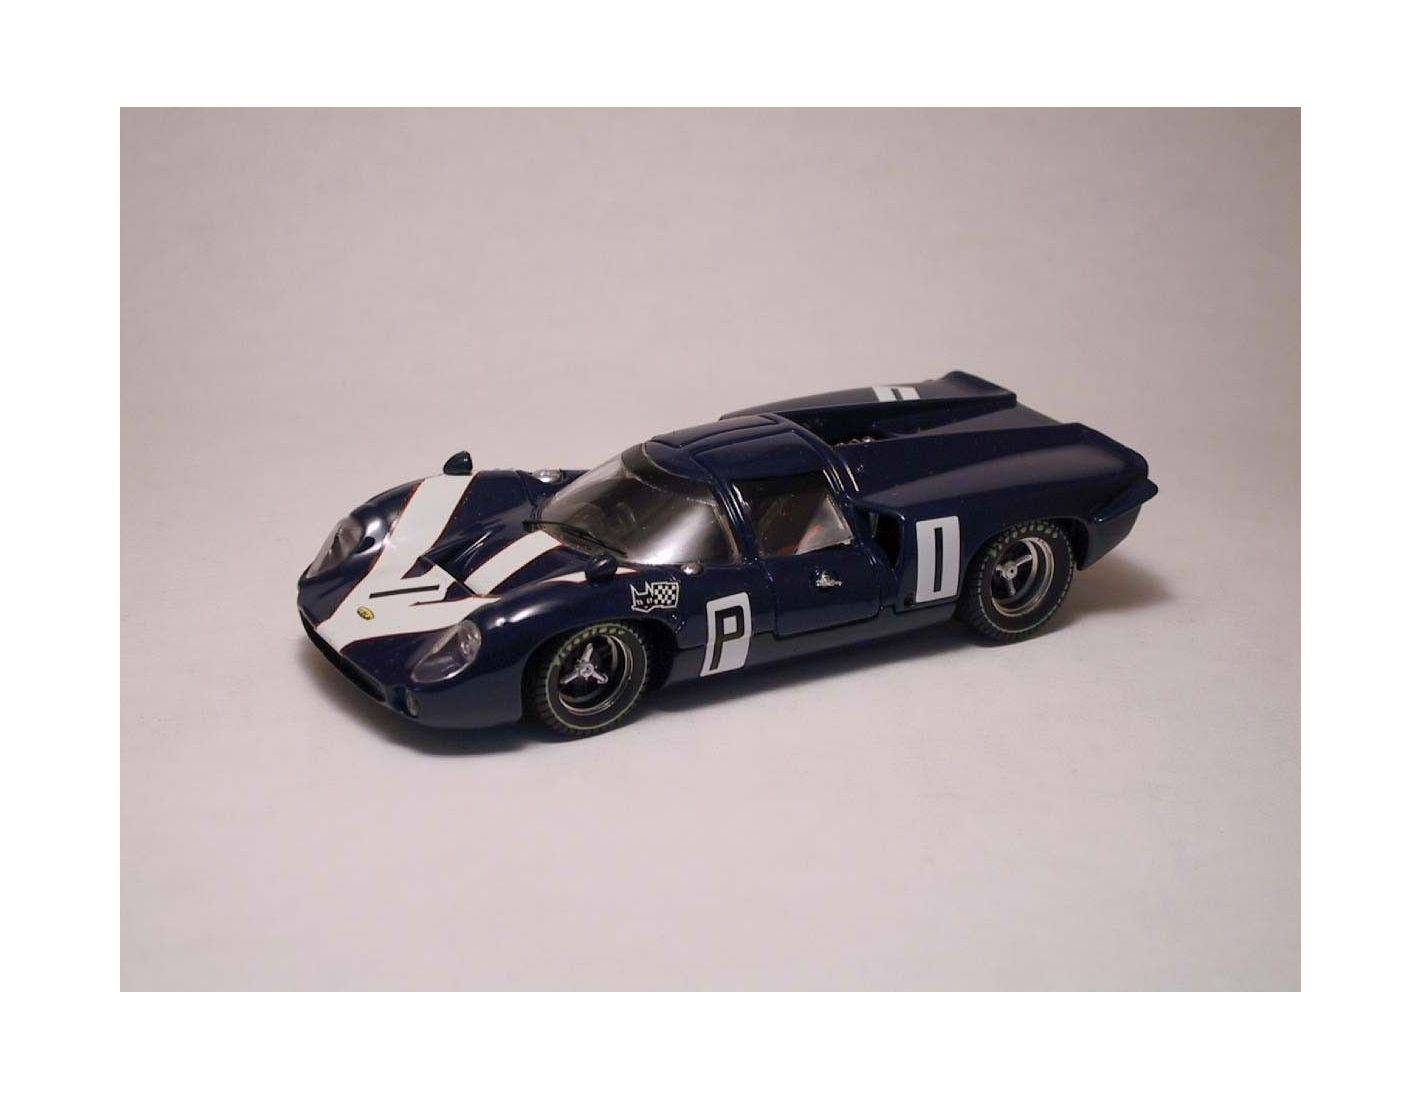 Best Model BT9210 LOLA T70 COUPE' N.1 DNF 1000 KM NURBURGRING 1967 SURTEES-HOBBS 1:43 Modellino